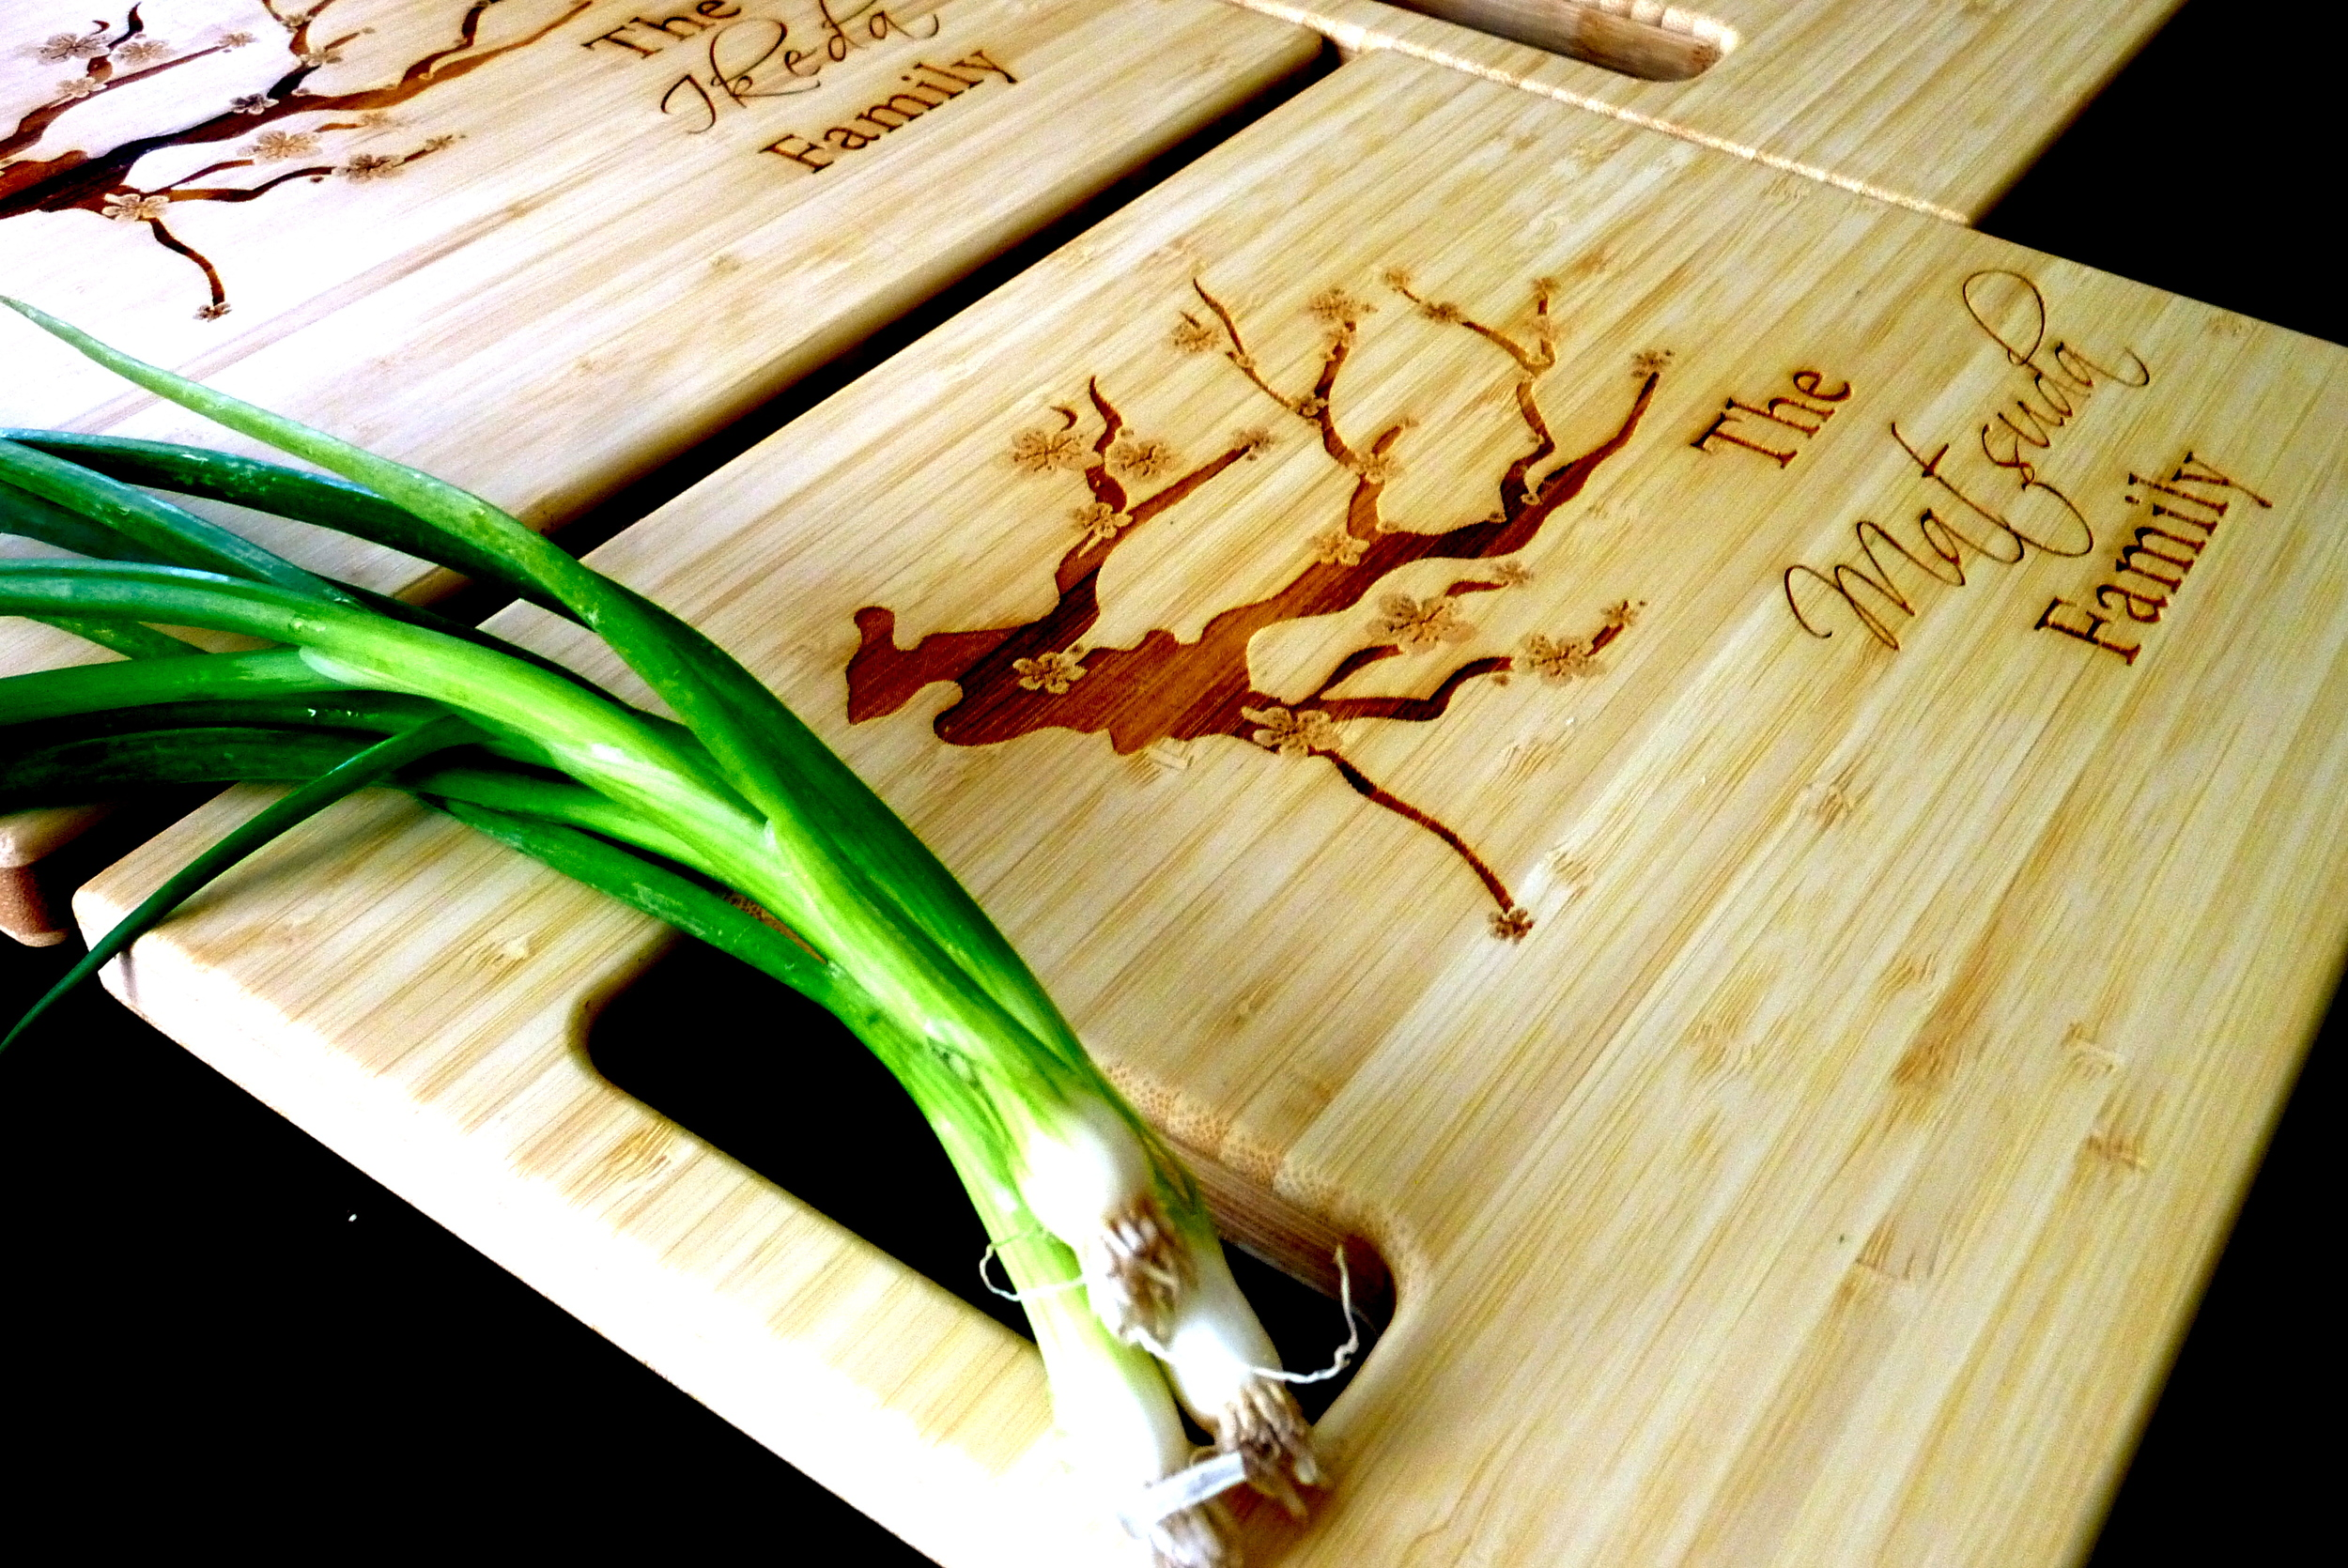 A Cherry Blossom design done on a bamboo cutting board.